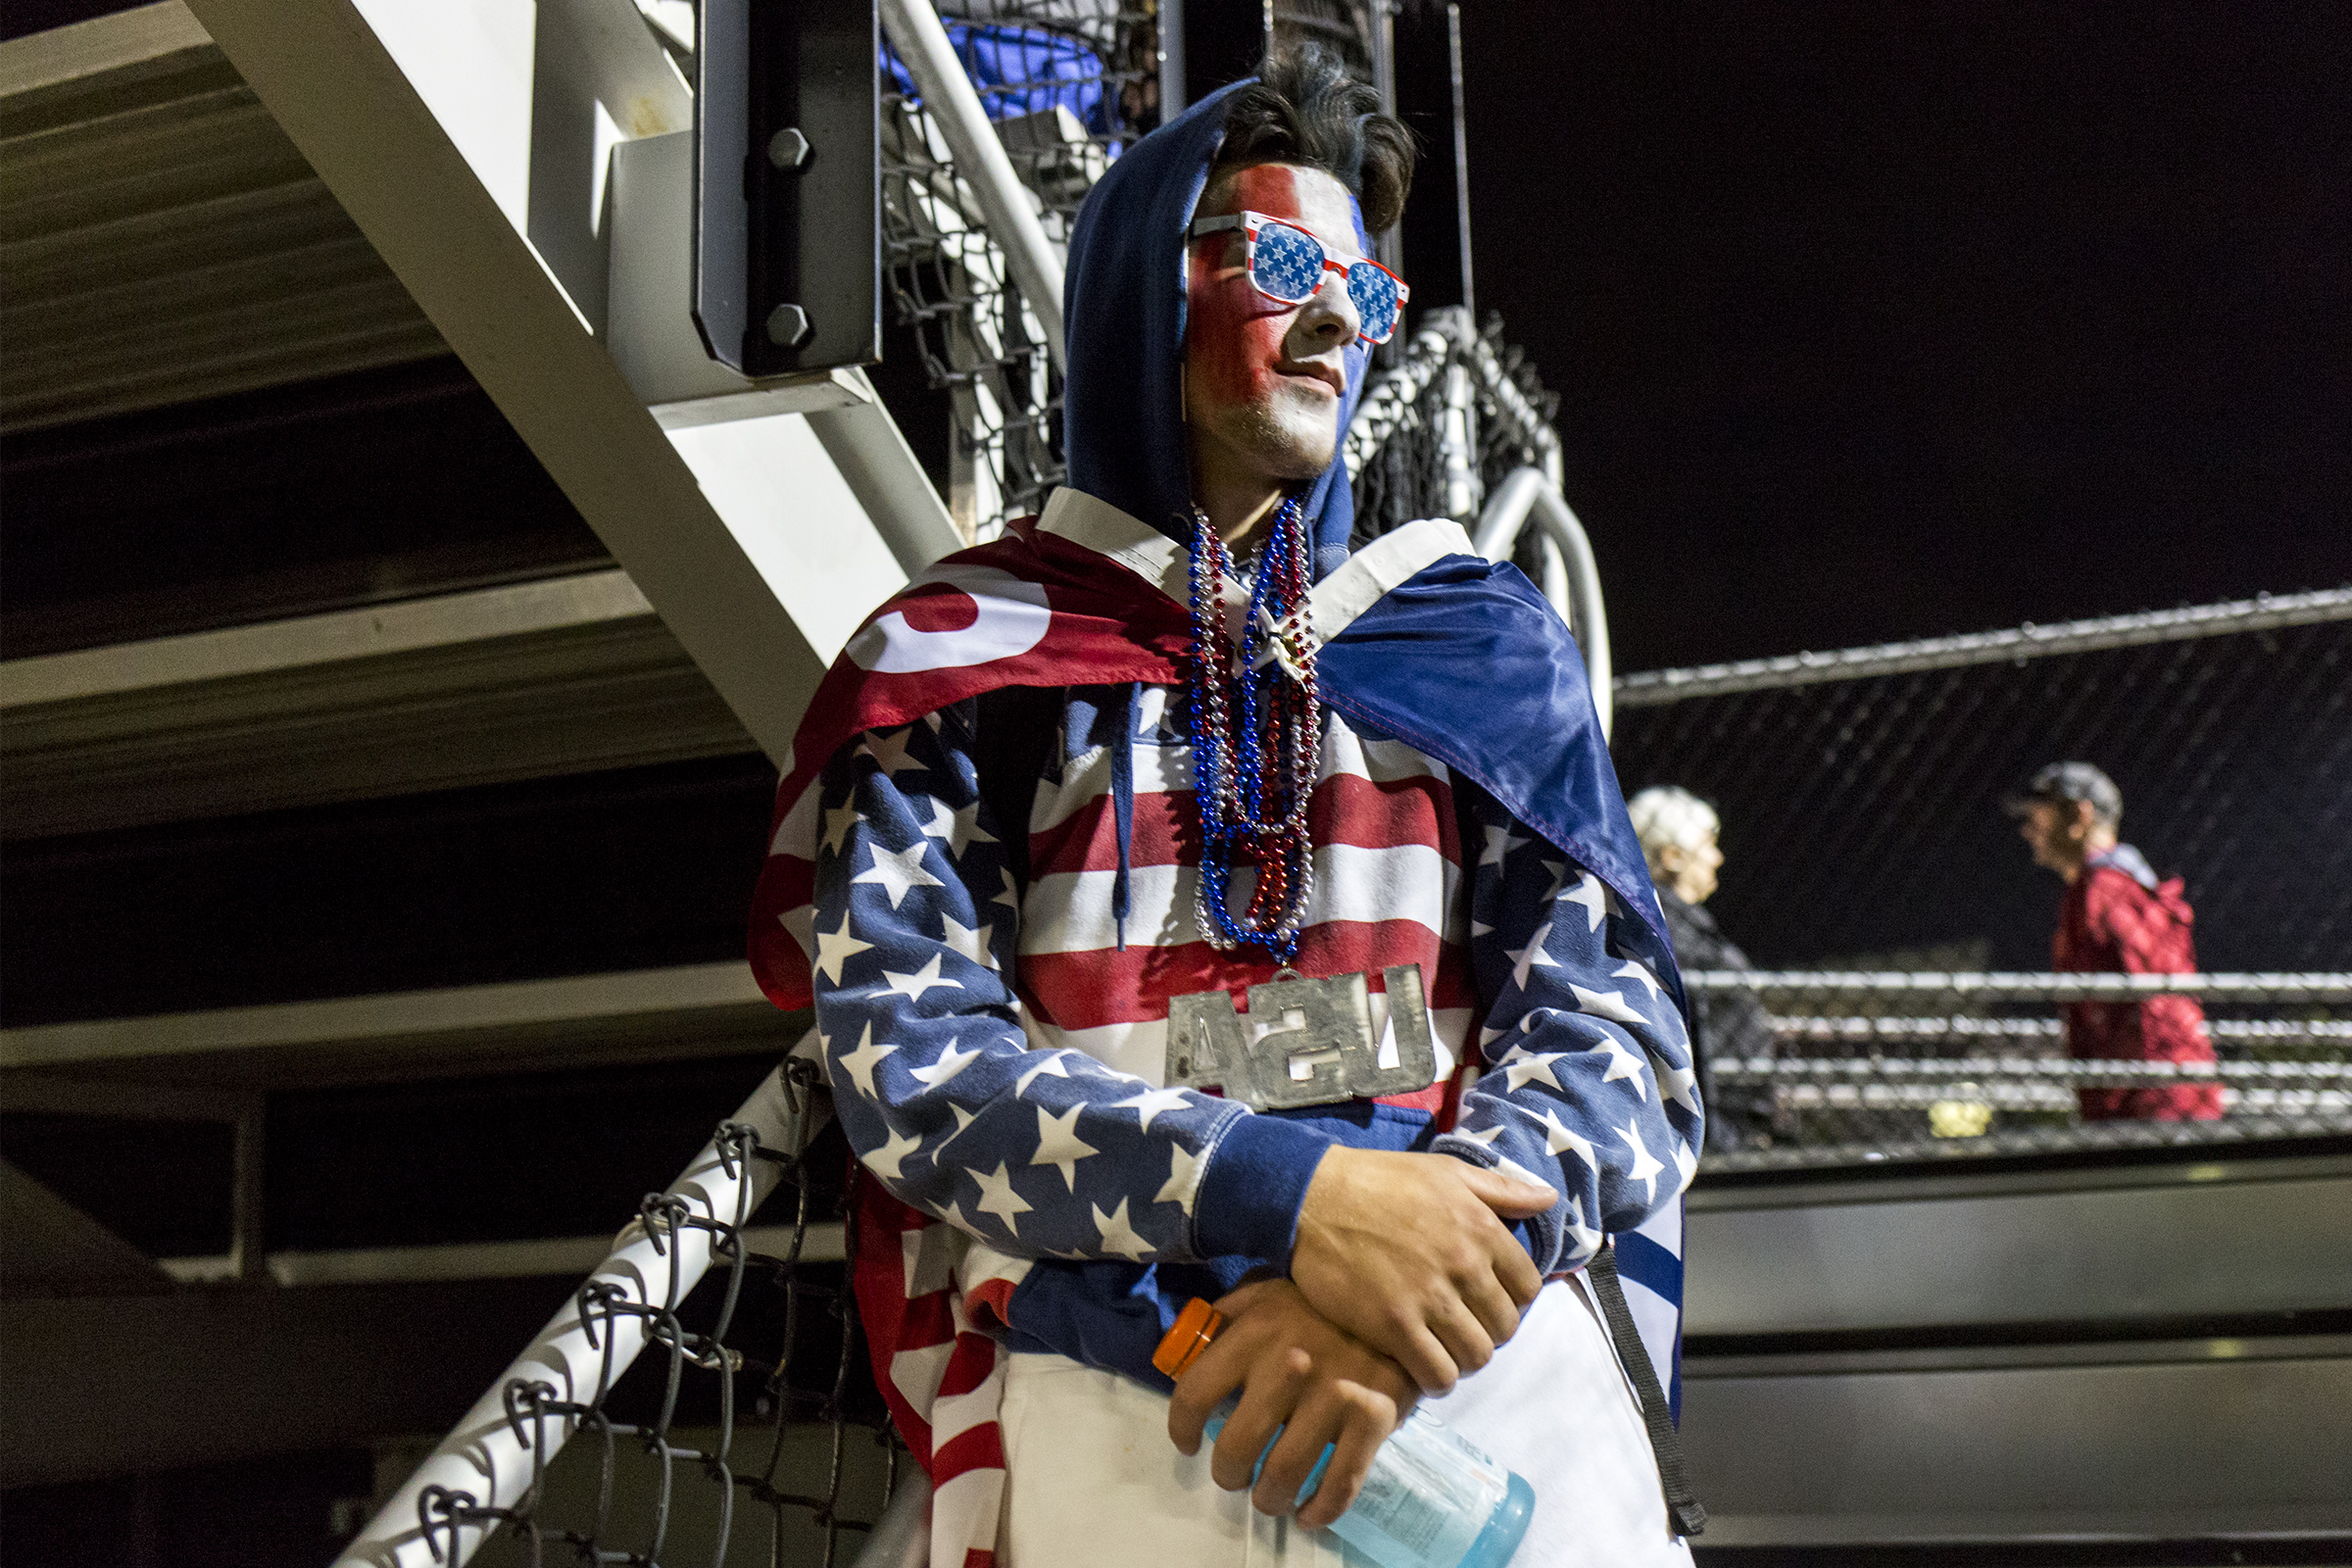 Woburn Memorial High junior Cam Goneau poses for a portrait in his USA themed outfit during the game against Belmont High at Connolly Stadium in Woburn on Sept. 21, 2018.